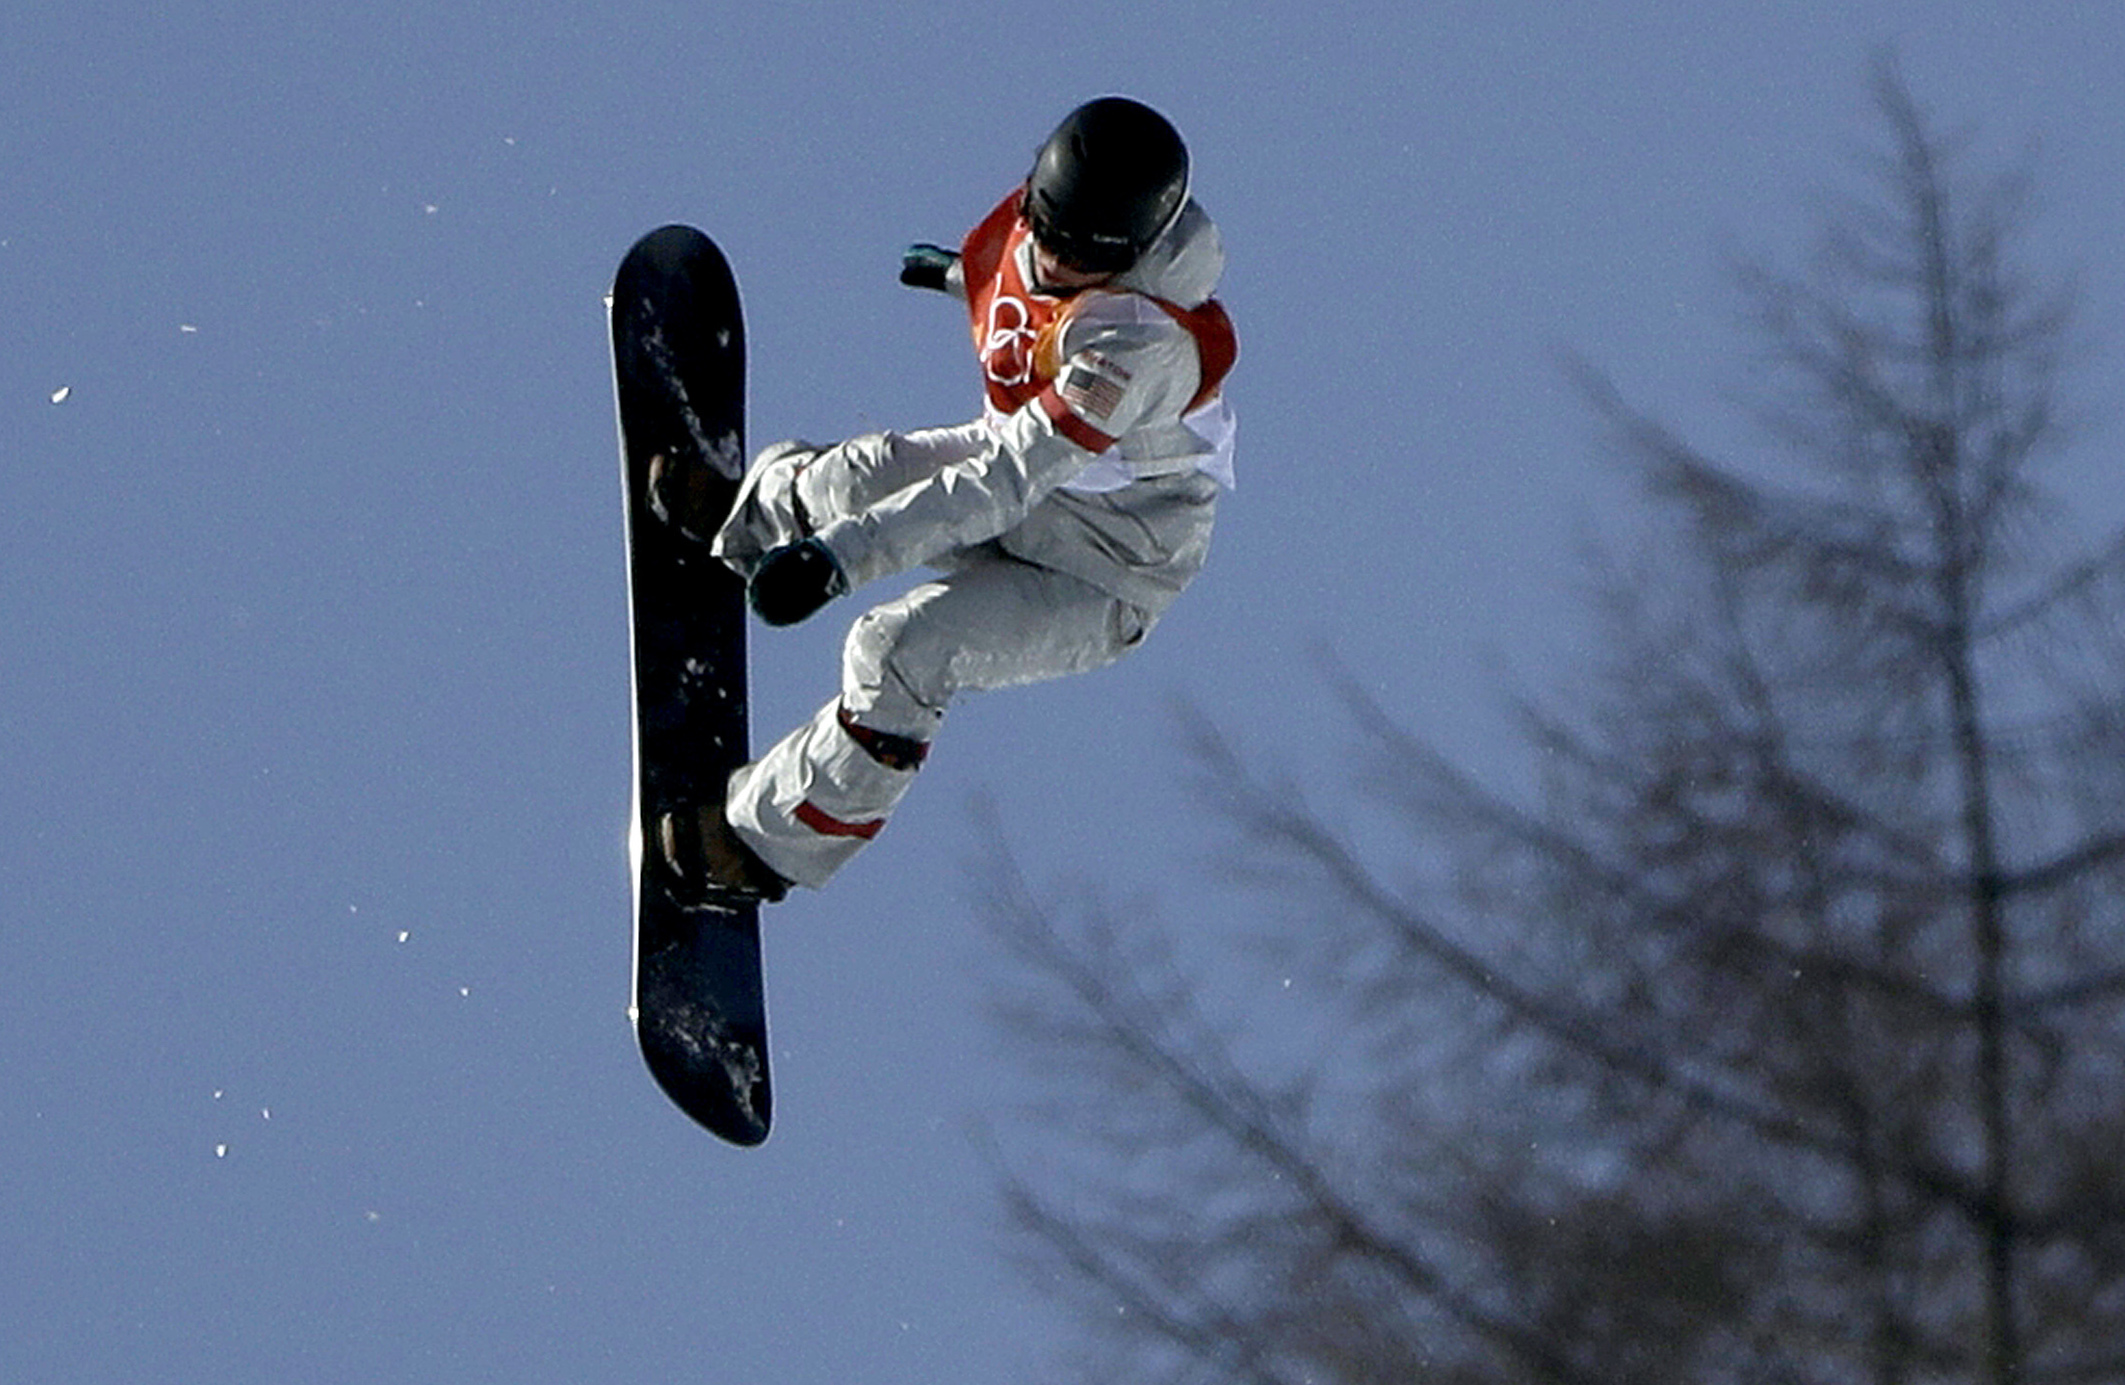 Photo: Arielle Gold Snowboard 2018 Winter Olympics (AP)